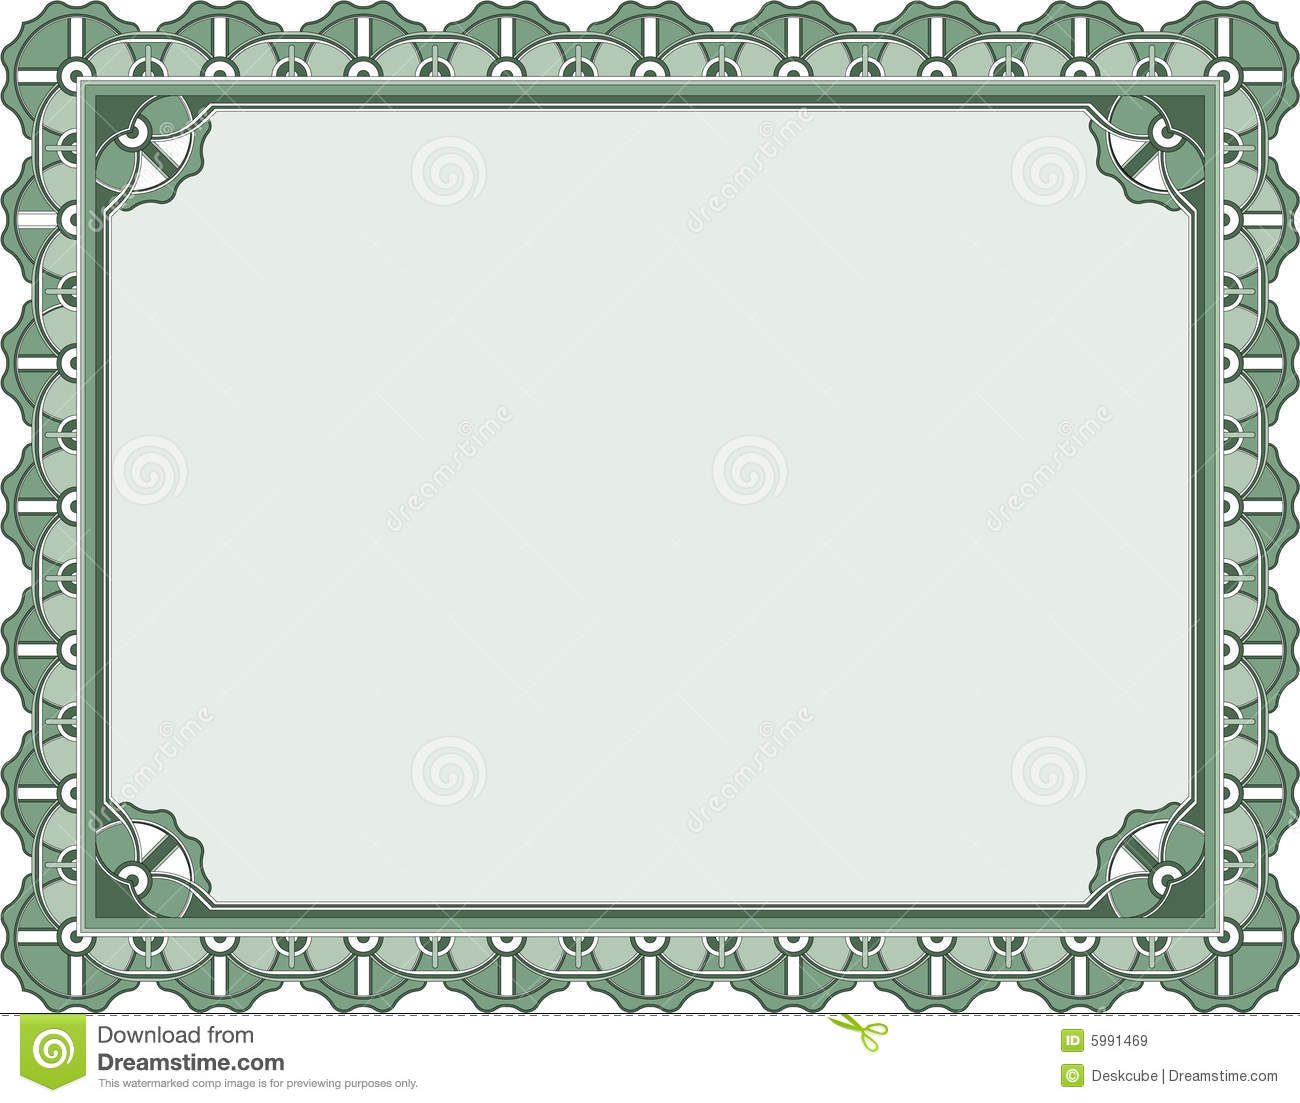 Award certificate template stock vector image of honor 5991469 award certificate template xflitez Gallery